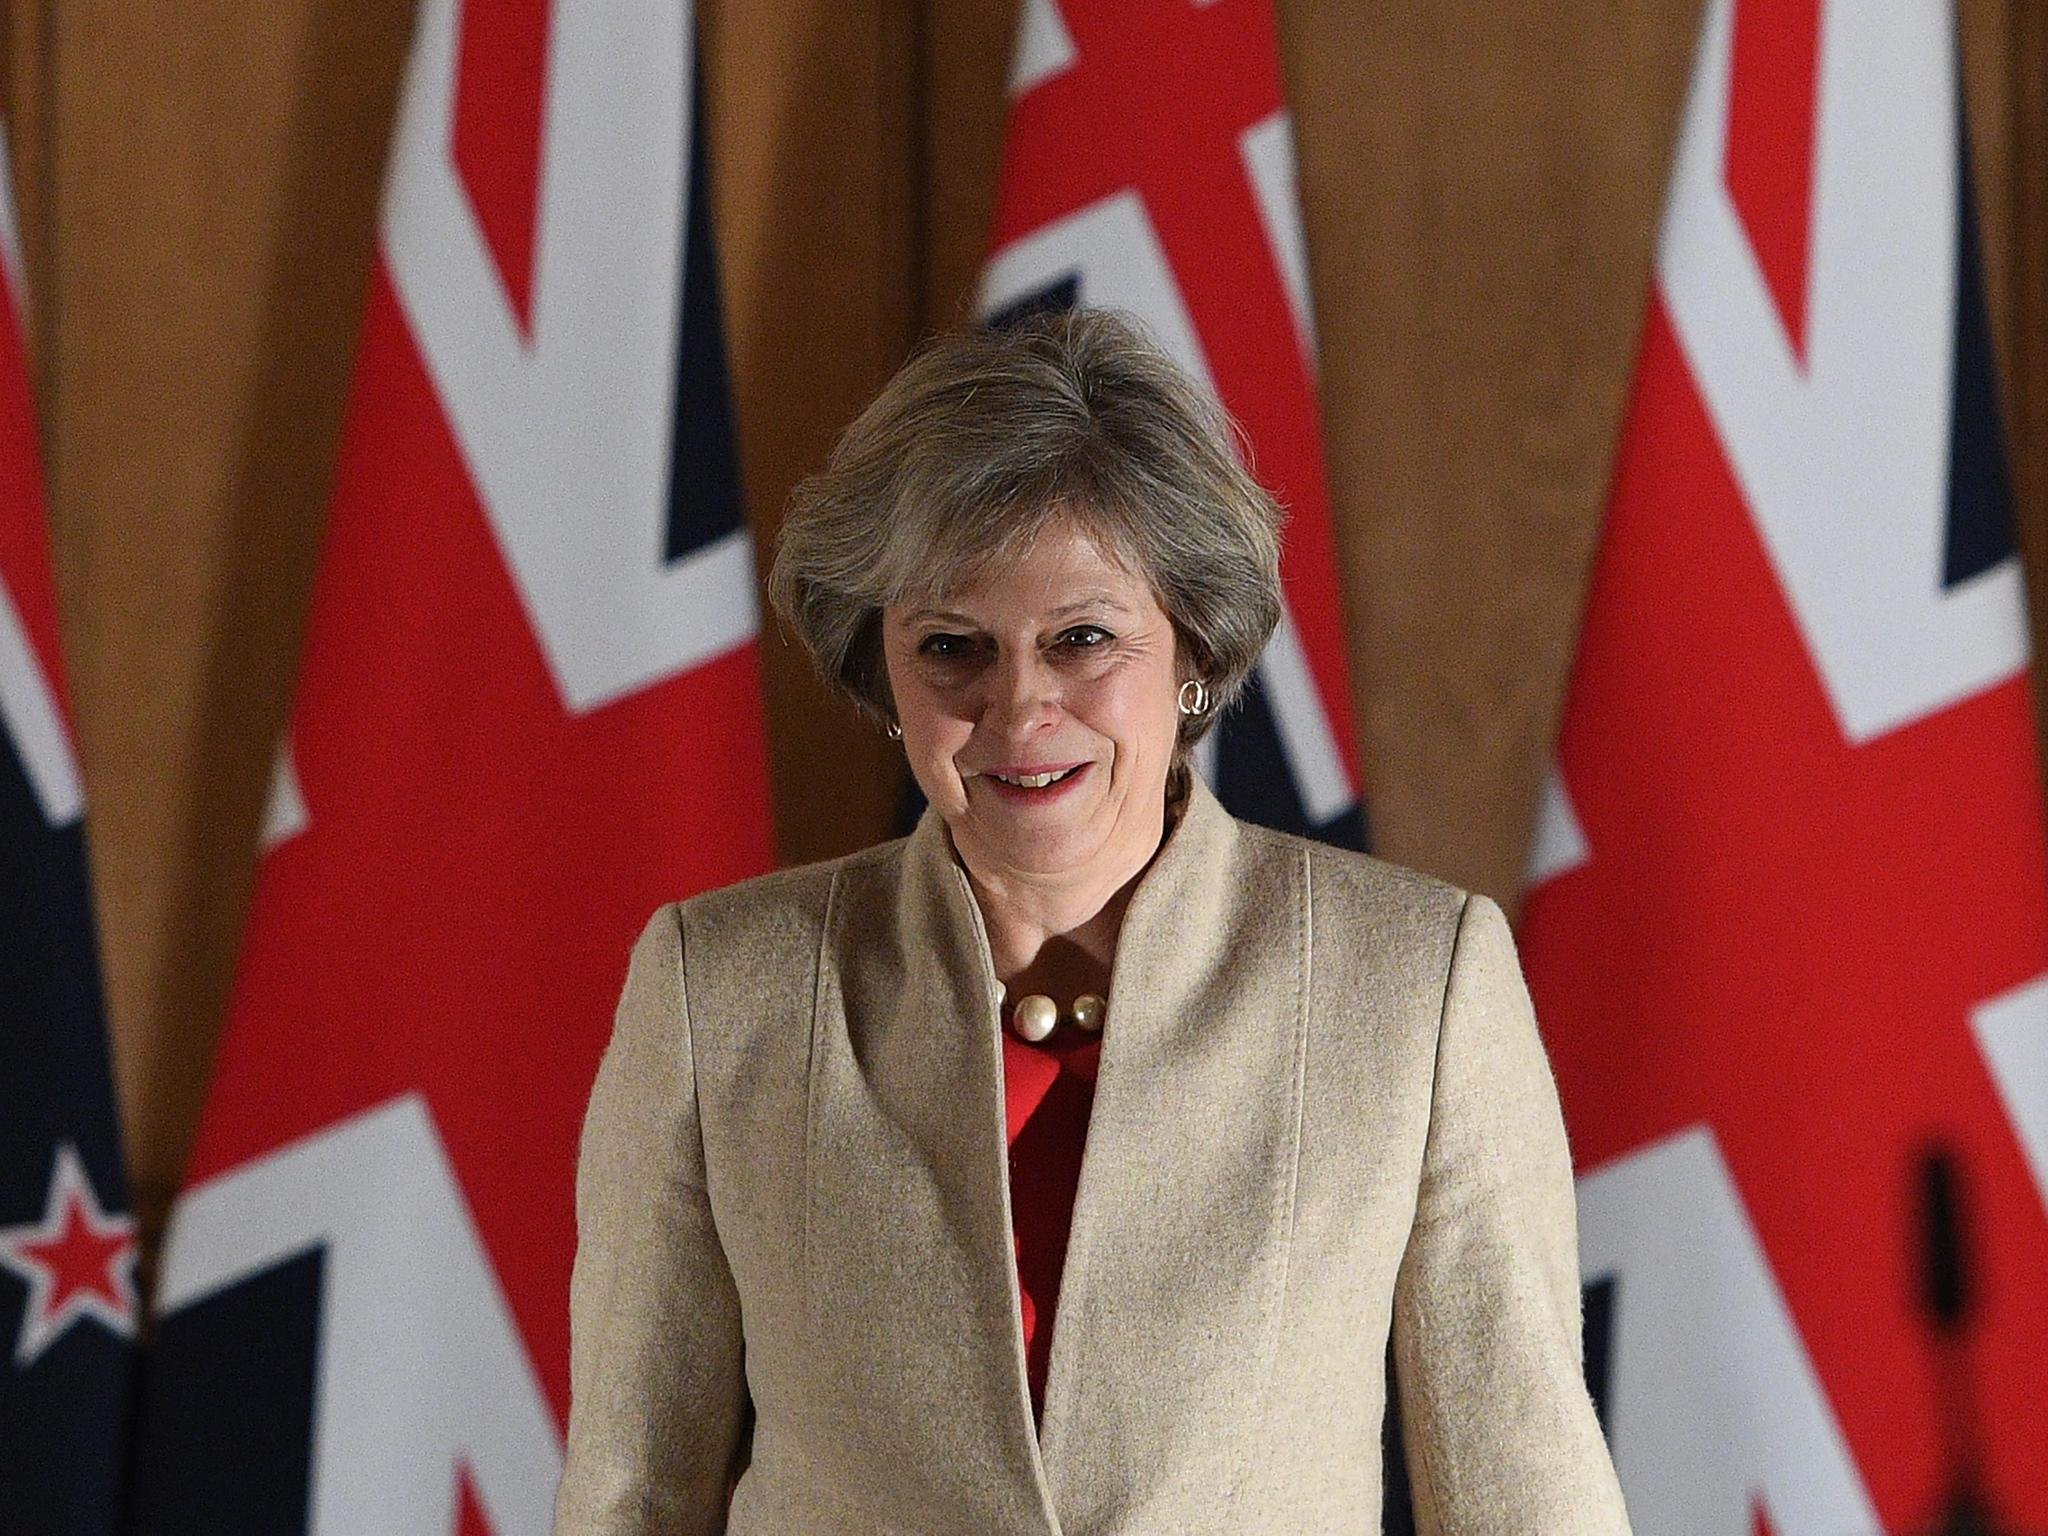 Brexit: Theresa May promises to reveal 'negotiating priorities' in speech amid criticism over approach to EU withdrawal